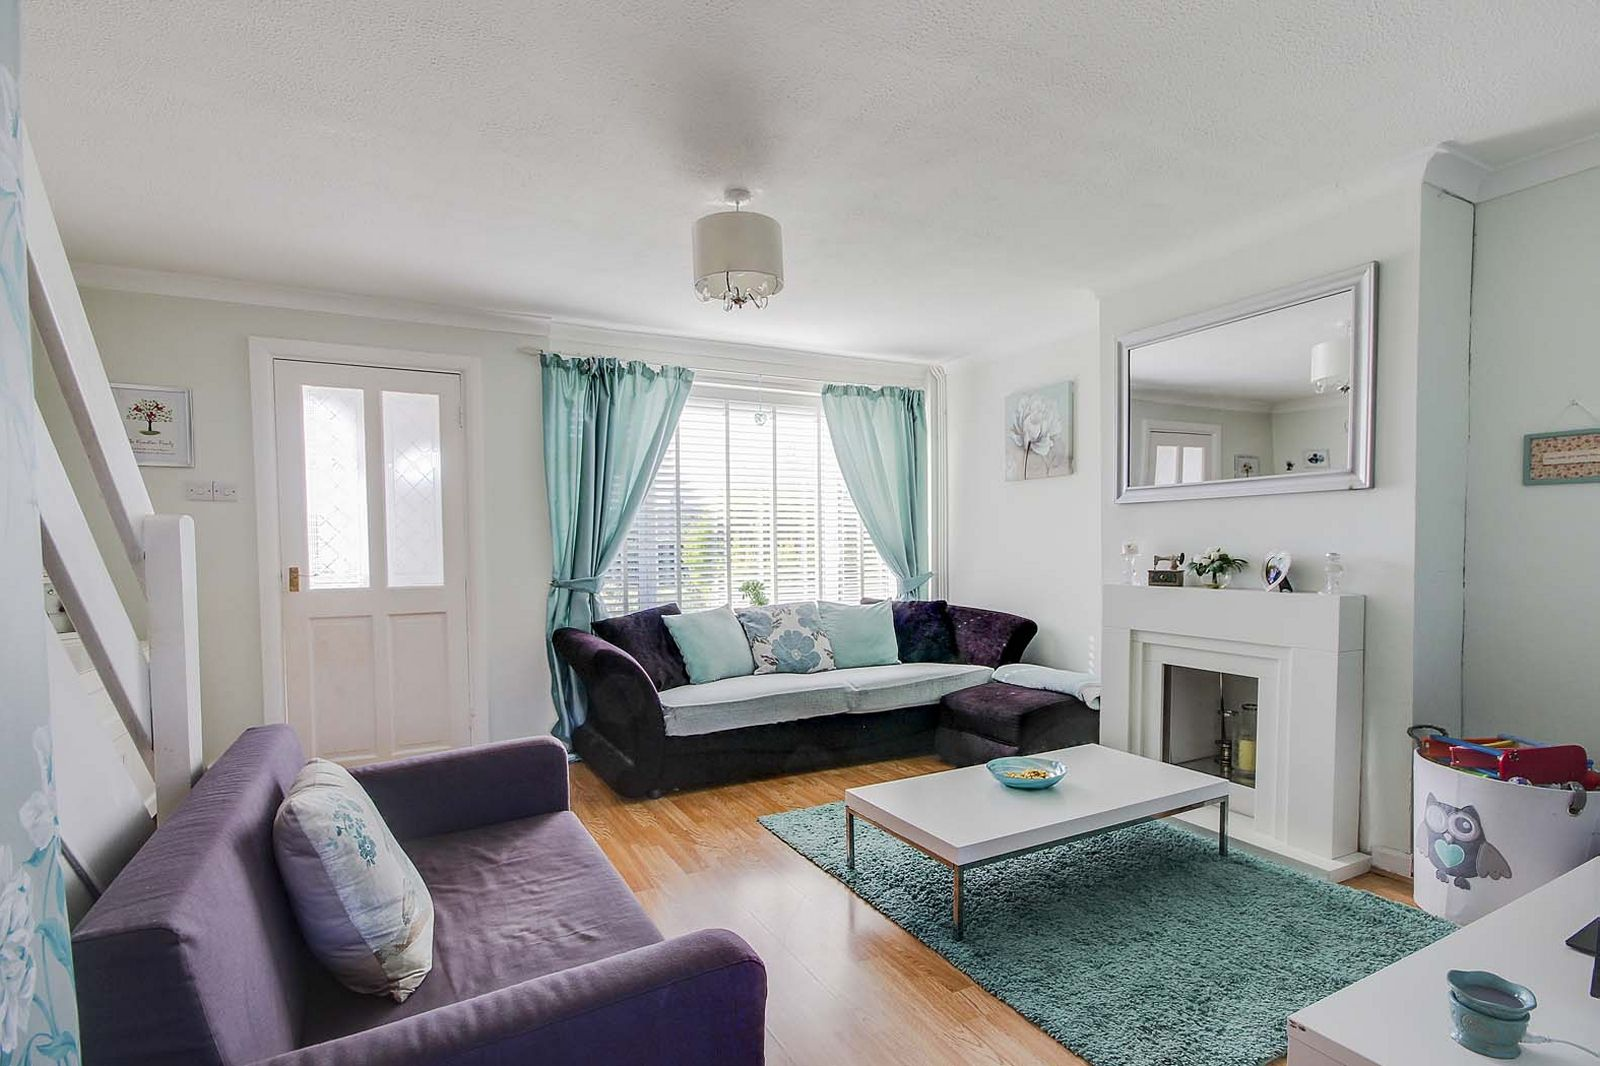 3 bed House for sale in East Preston - Sitting room (Property Image 9)